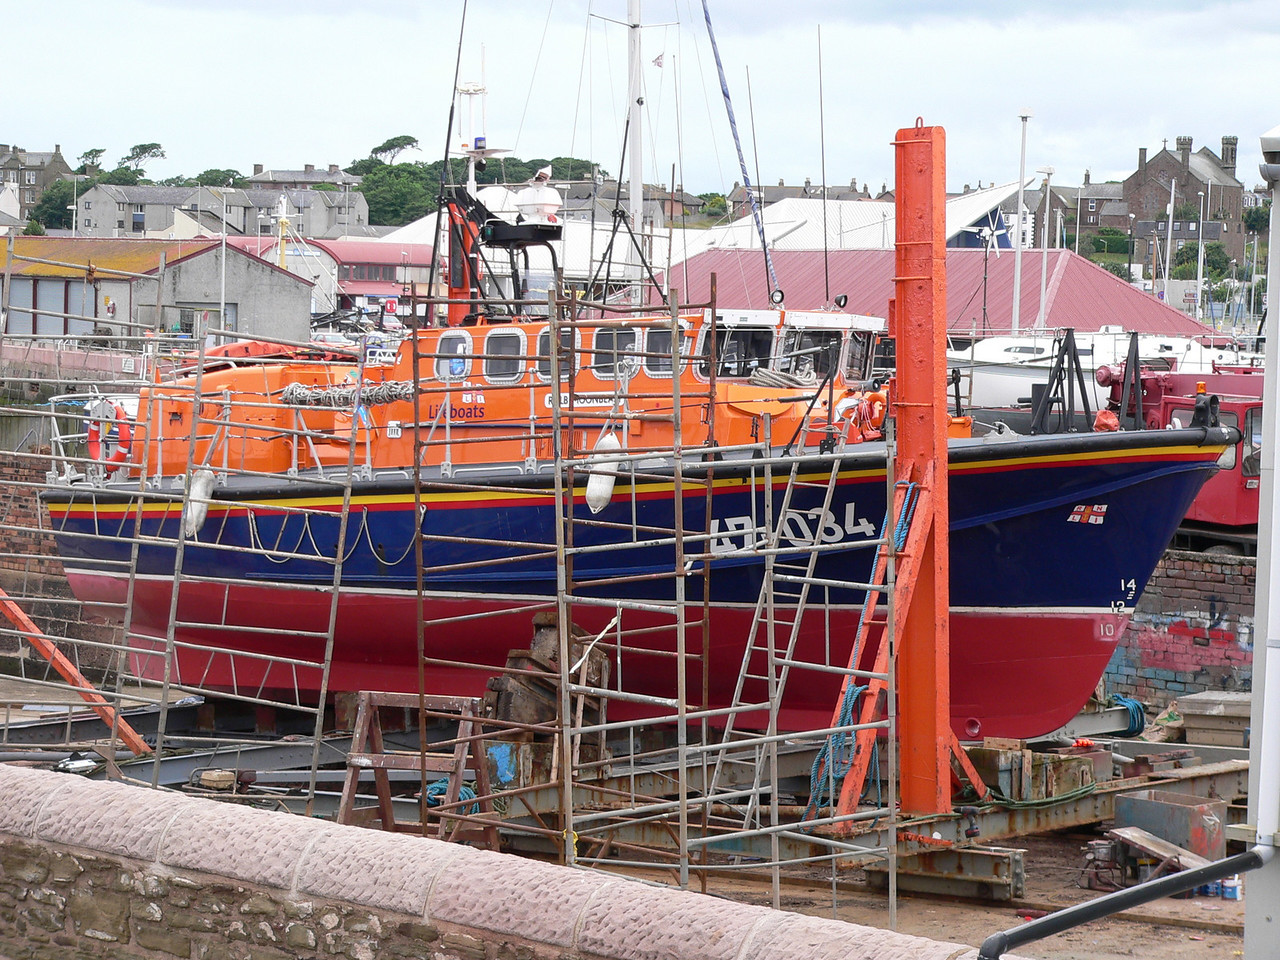 RNLB MOONBEAM